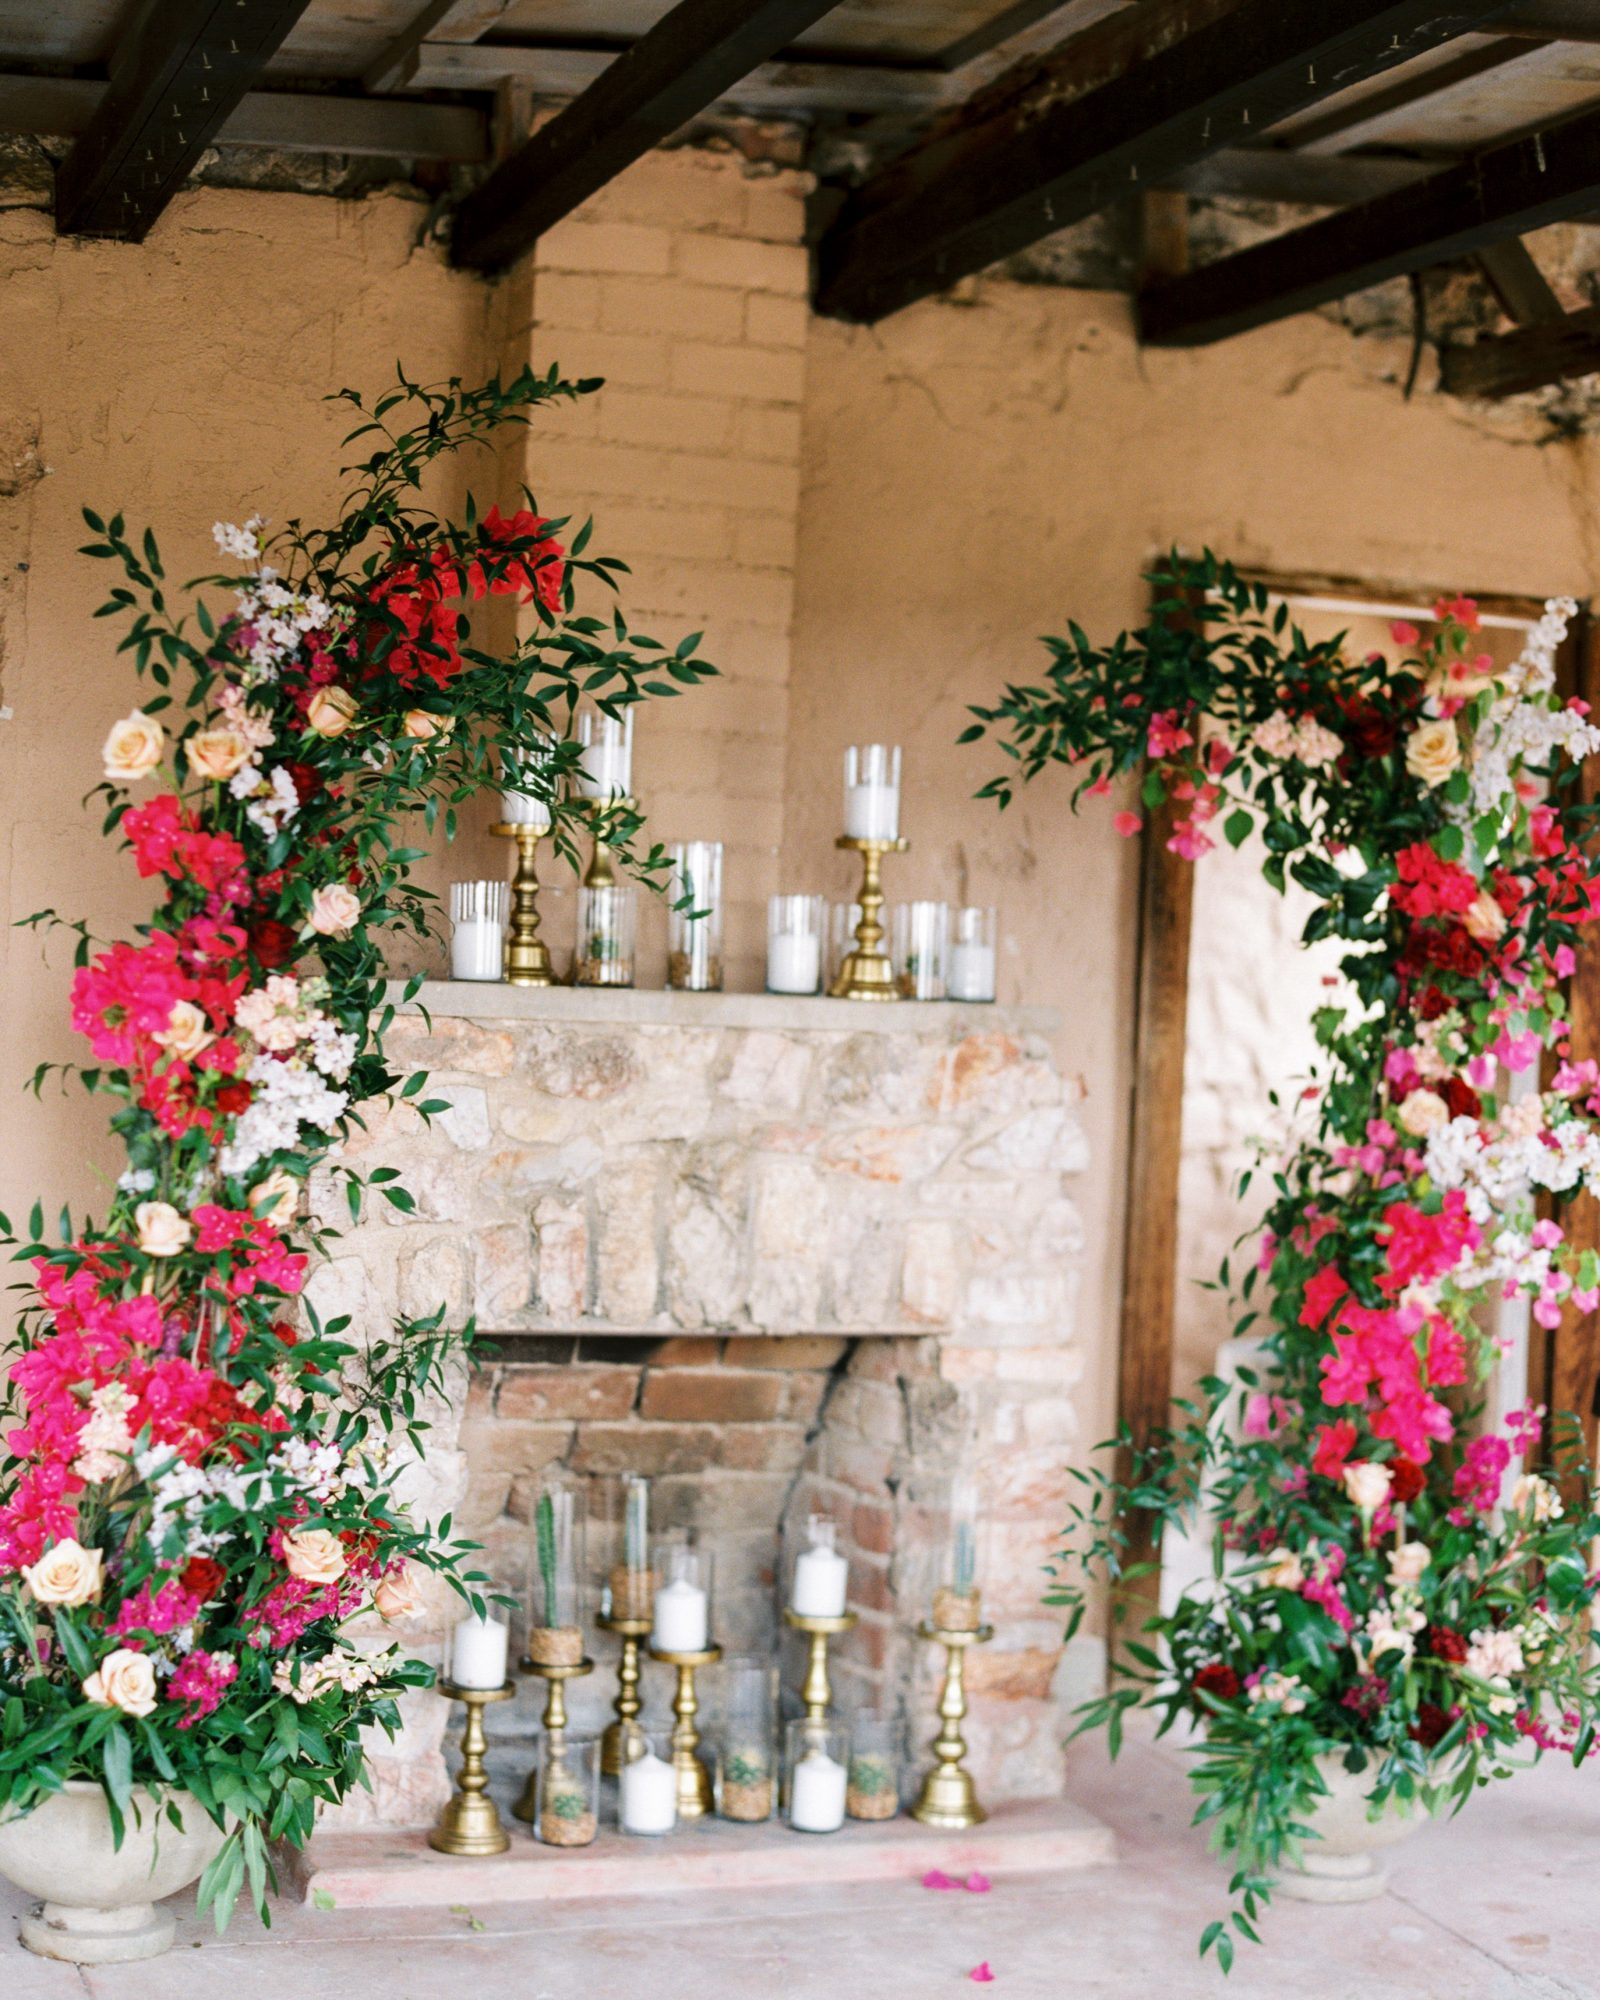 bougainvillea flowers fireplace photo backdrop